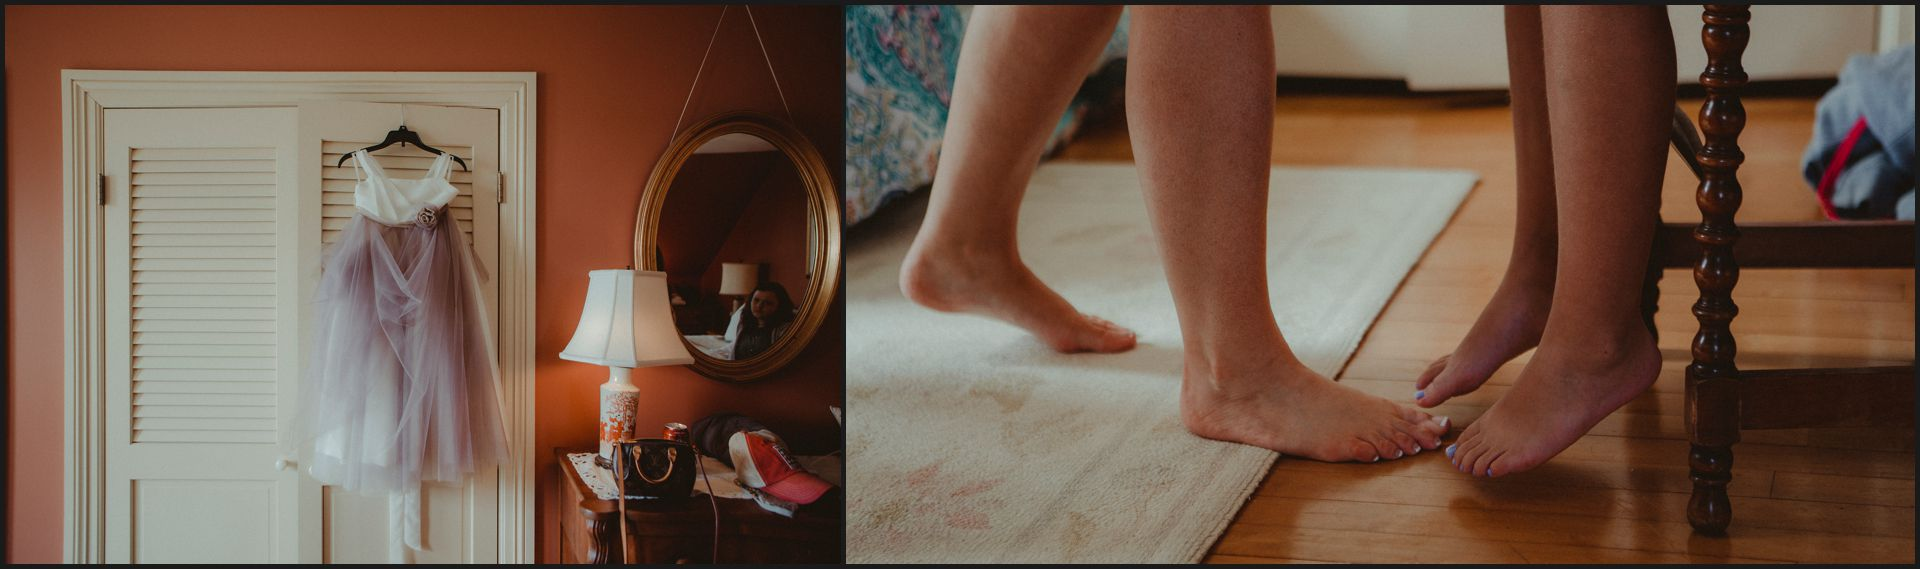 bride preparation, feet, mirror, child, mother and daughter